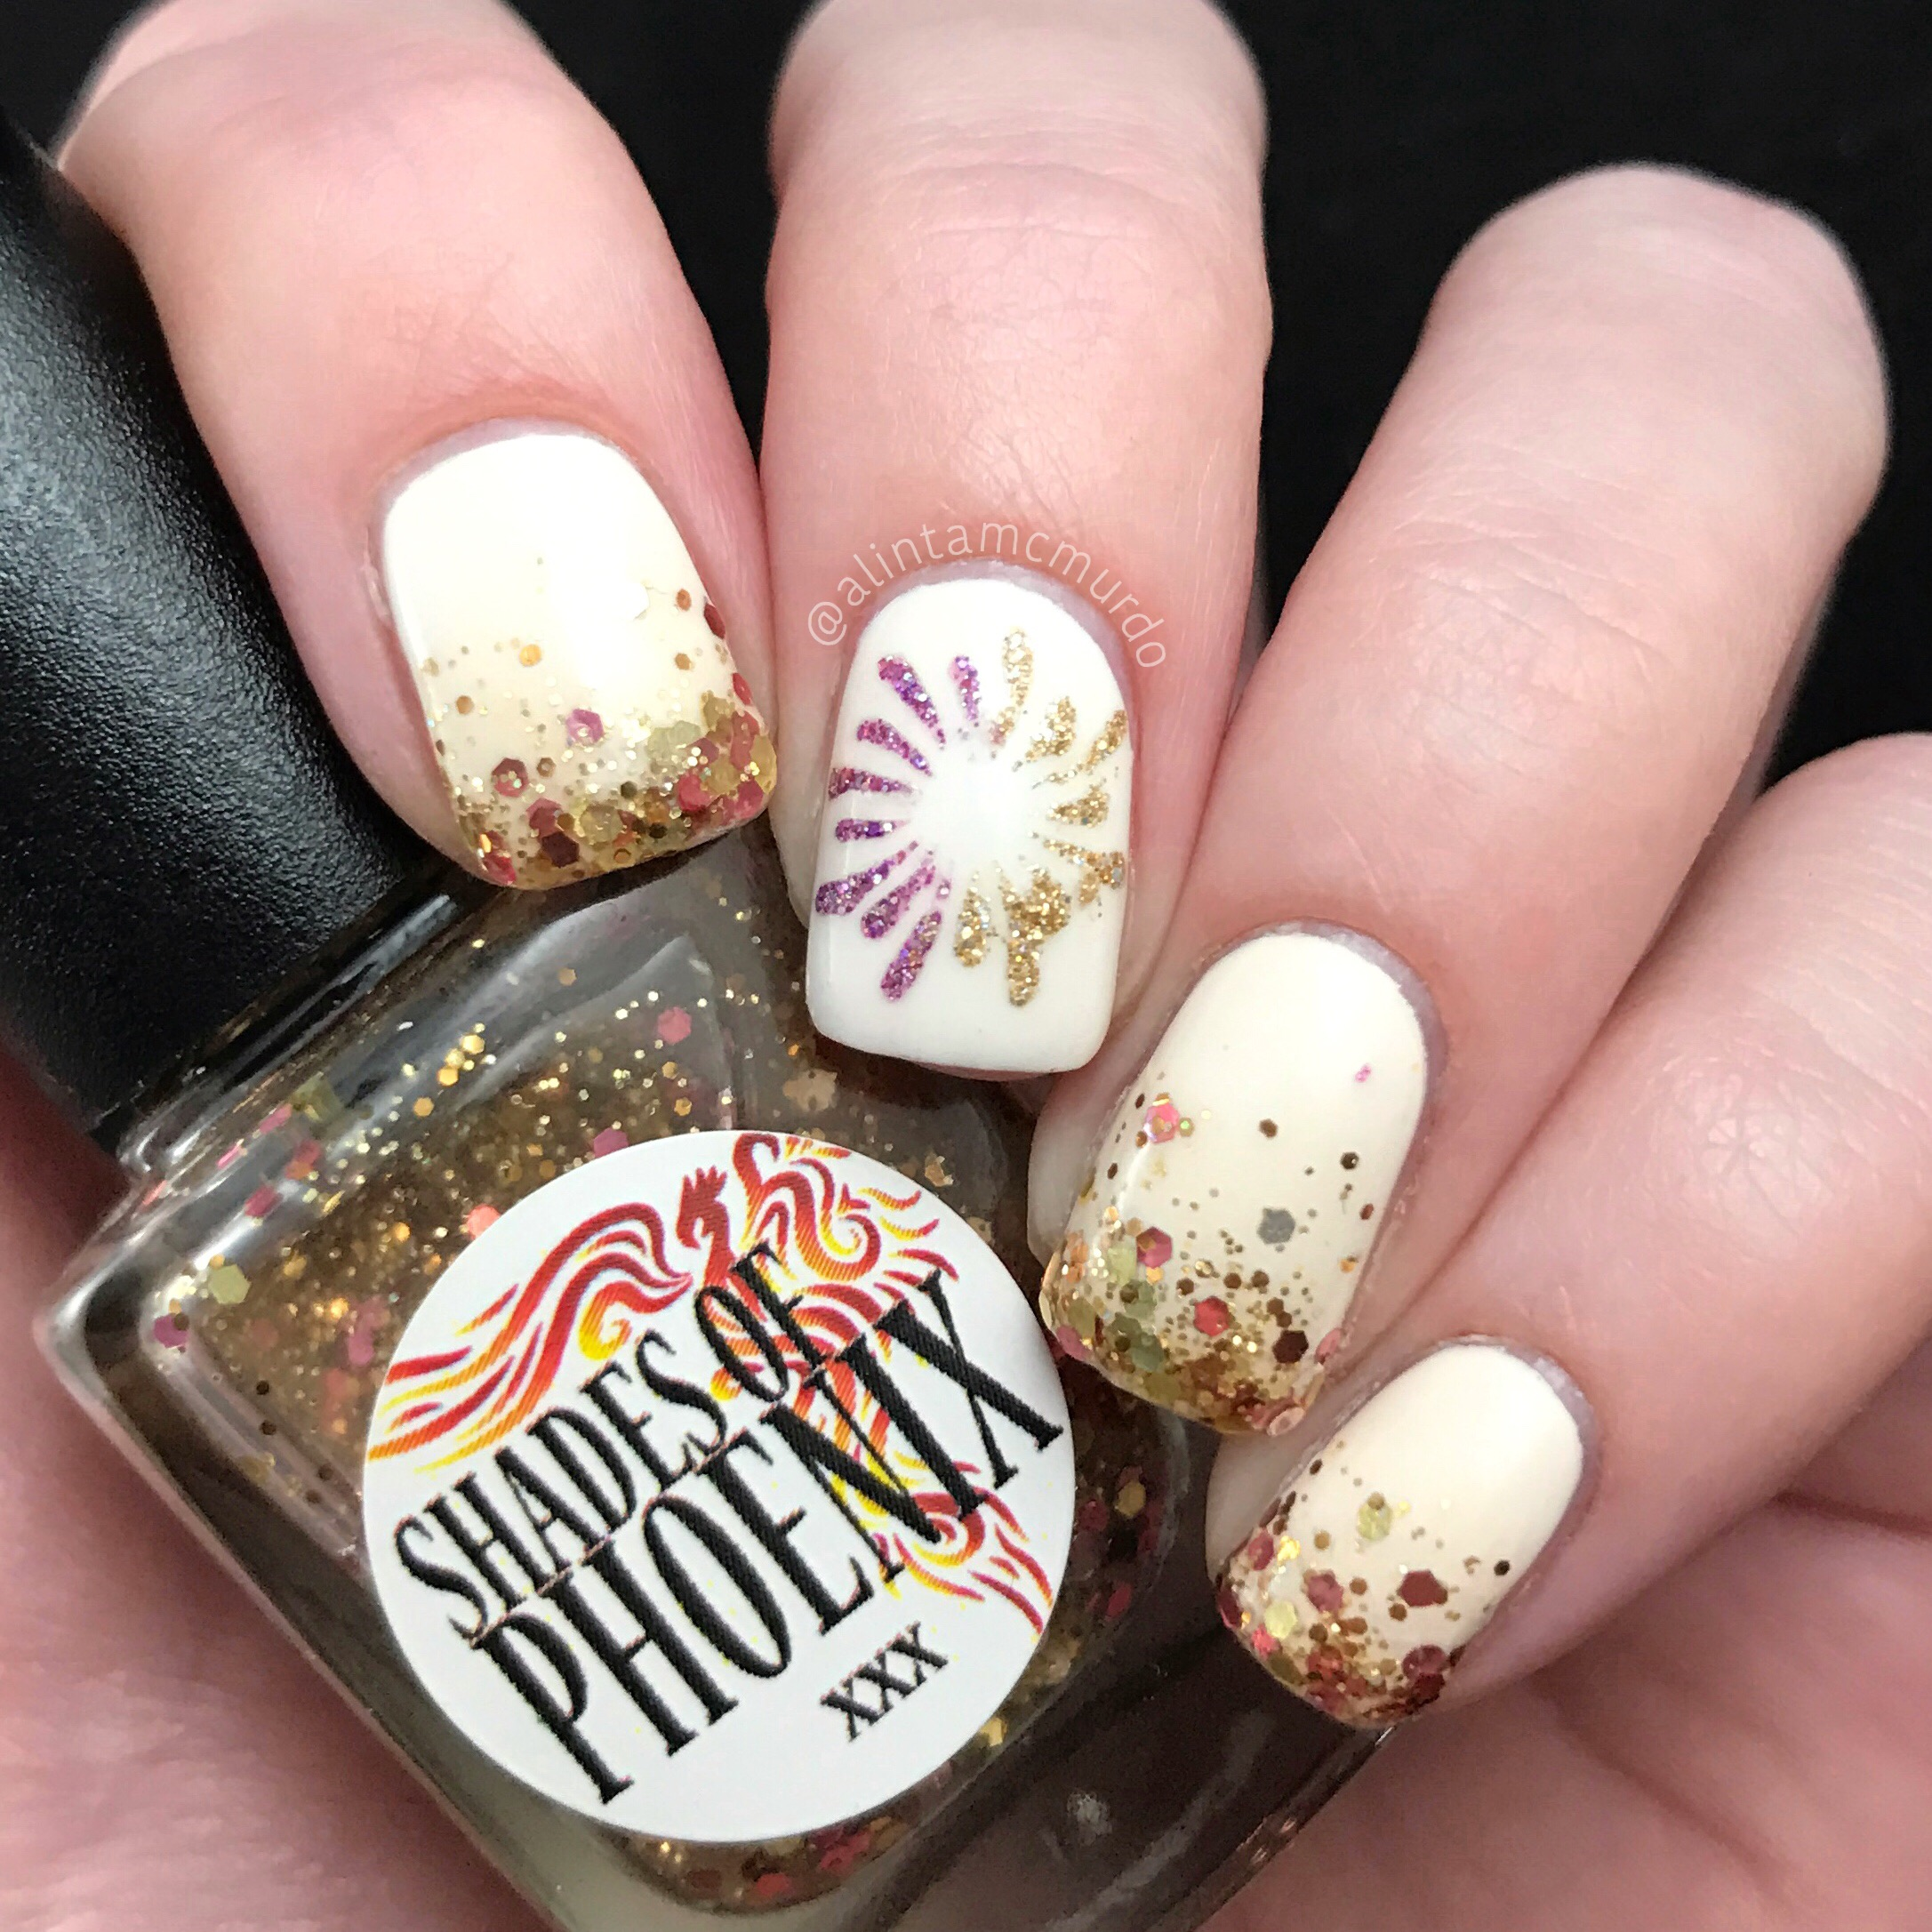 Glitter And Fireworks - New Year Nails - Polish And Paws